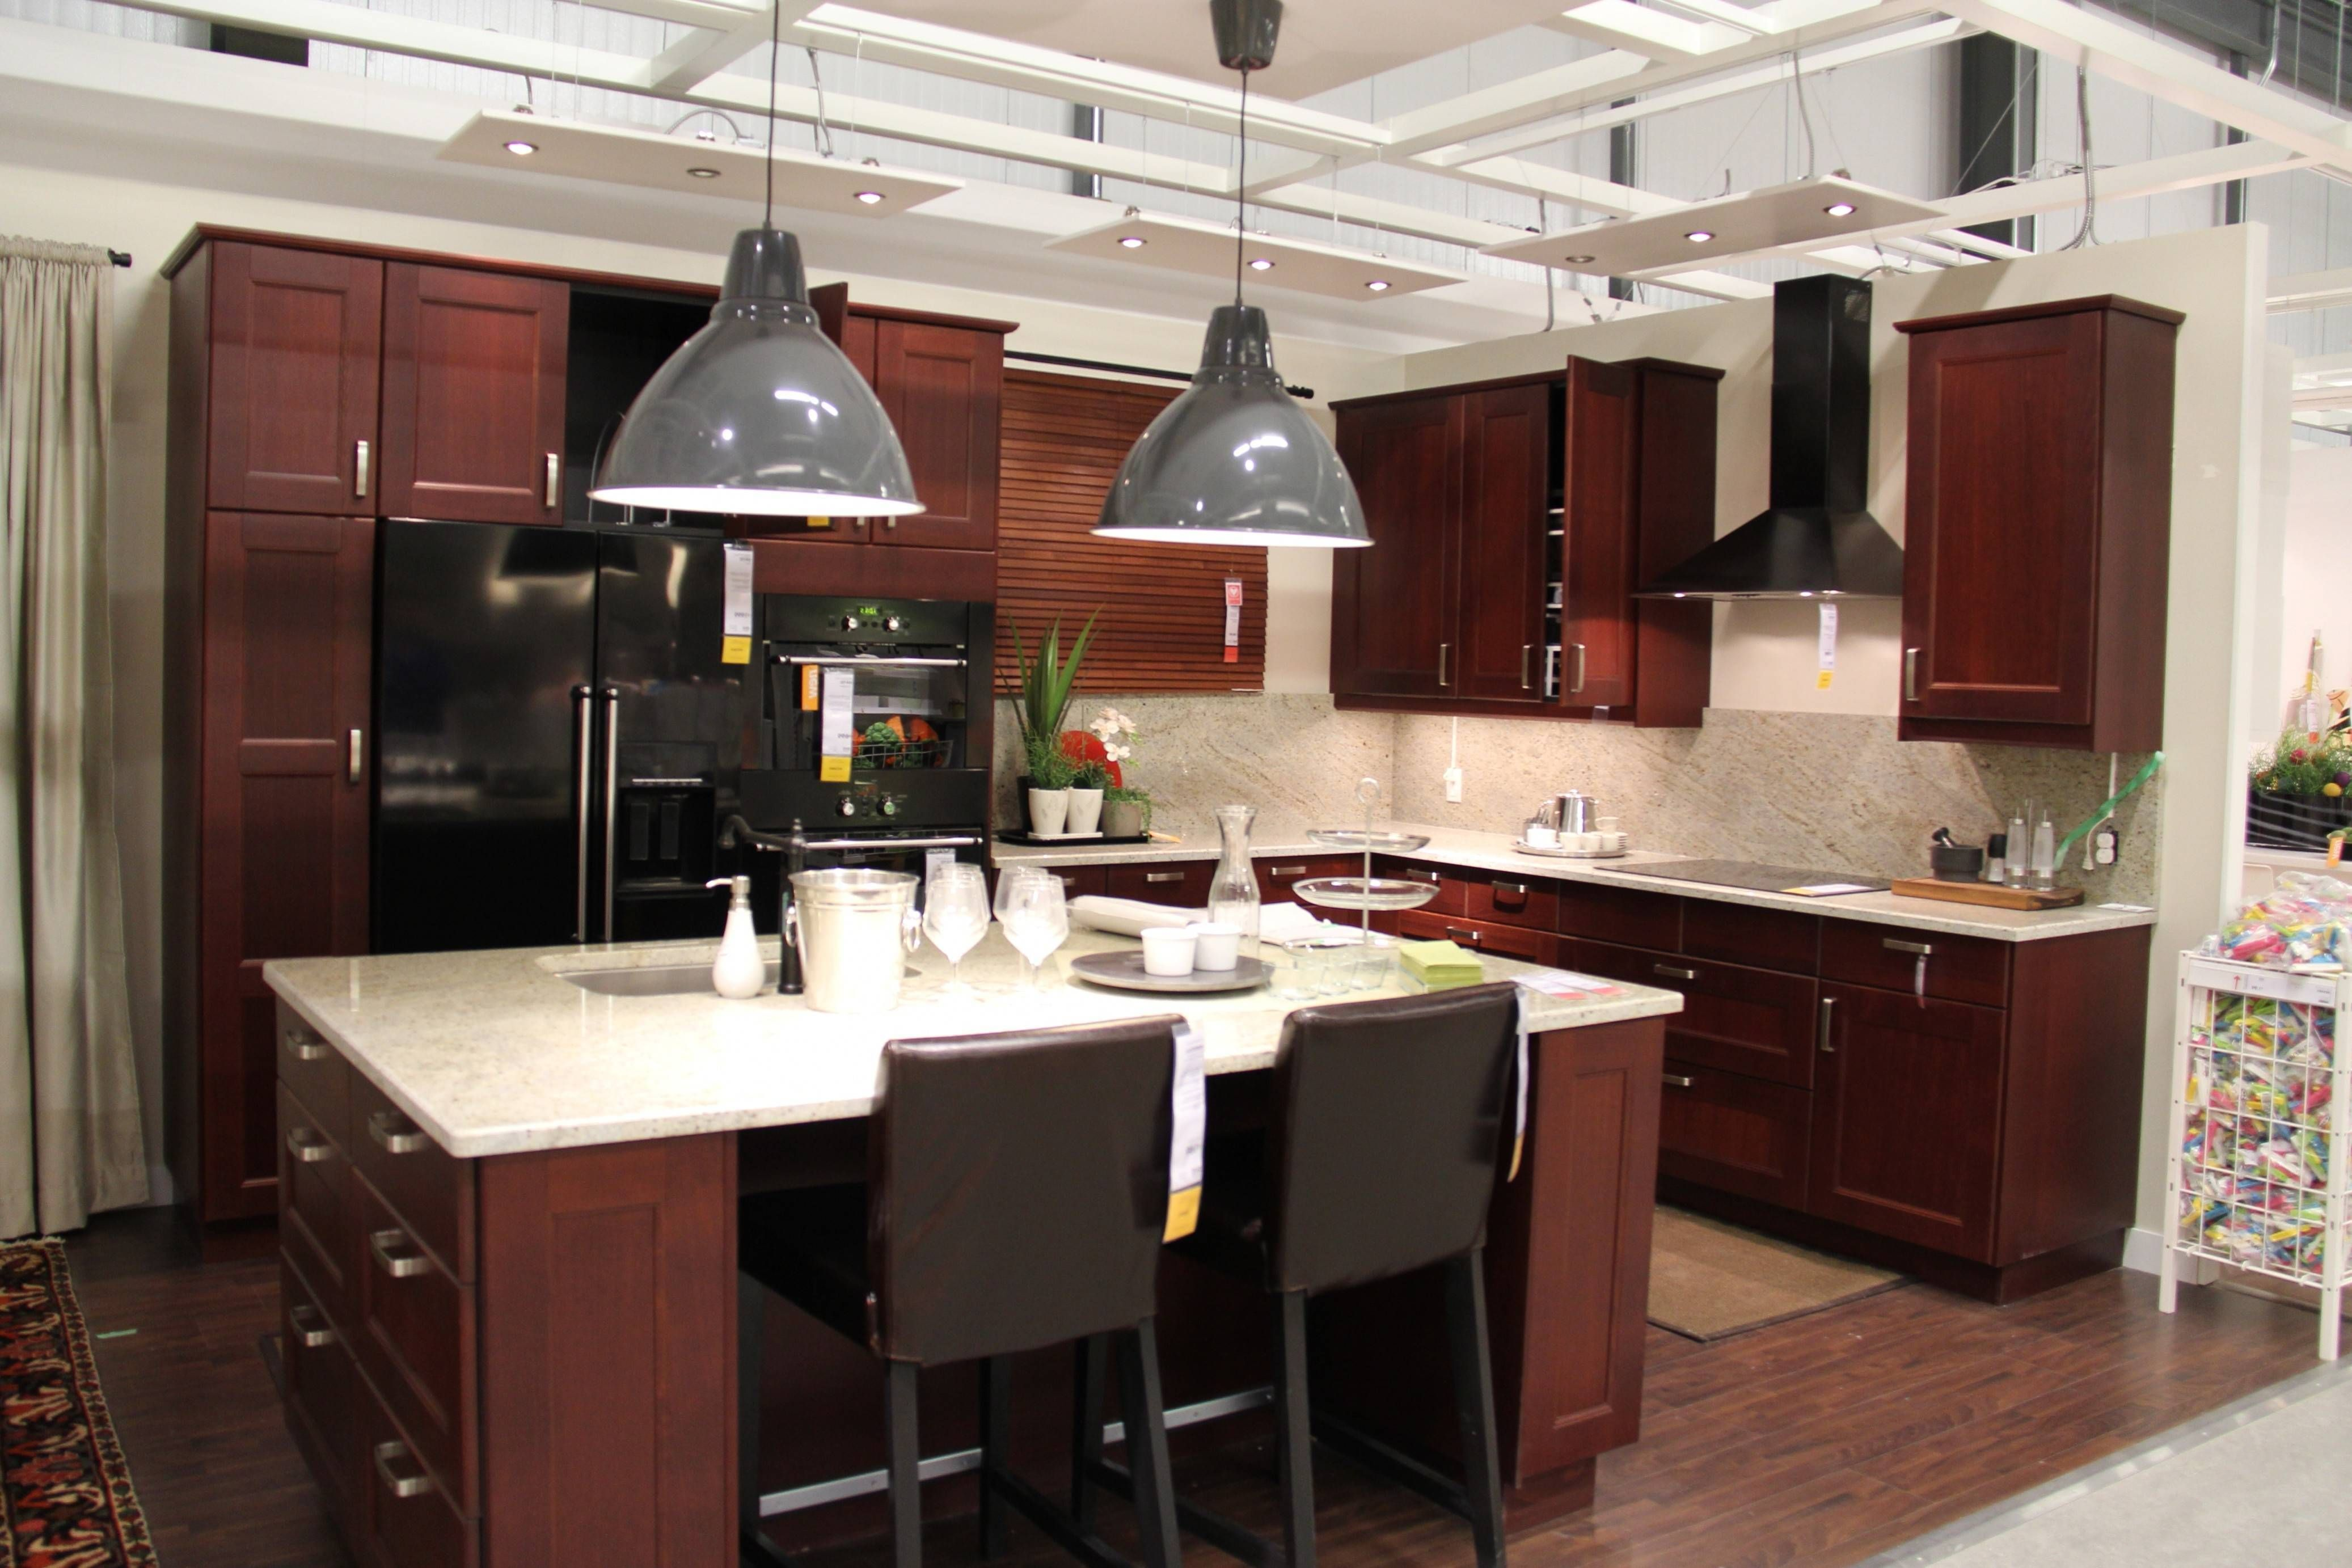 11x10 kitchen Yahoo Image Search Results Ikea kitchen